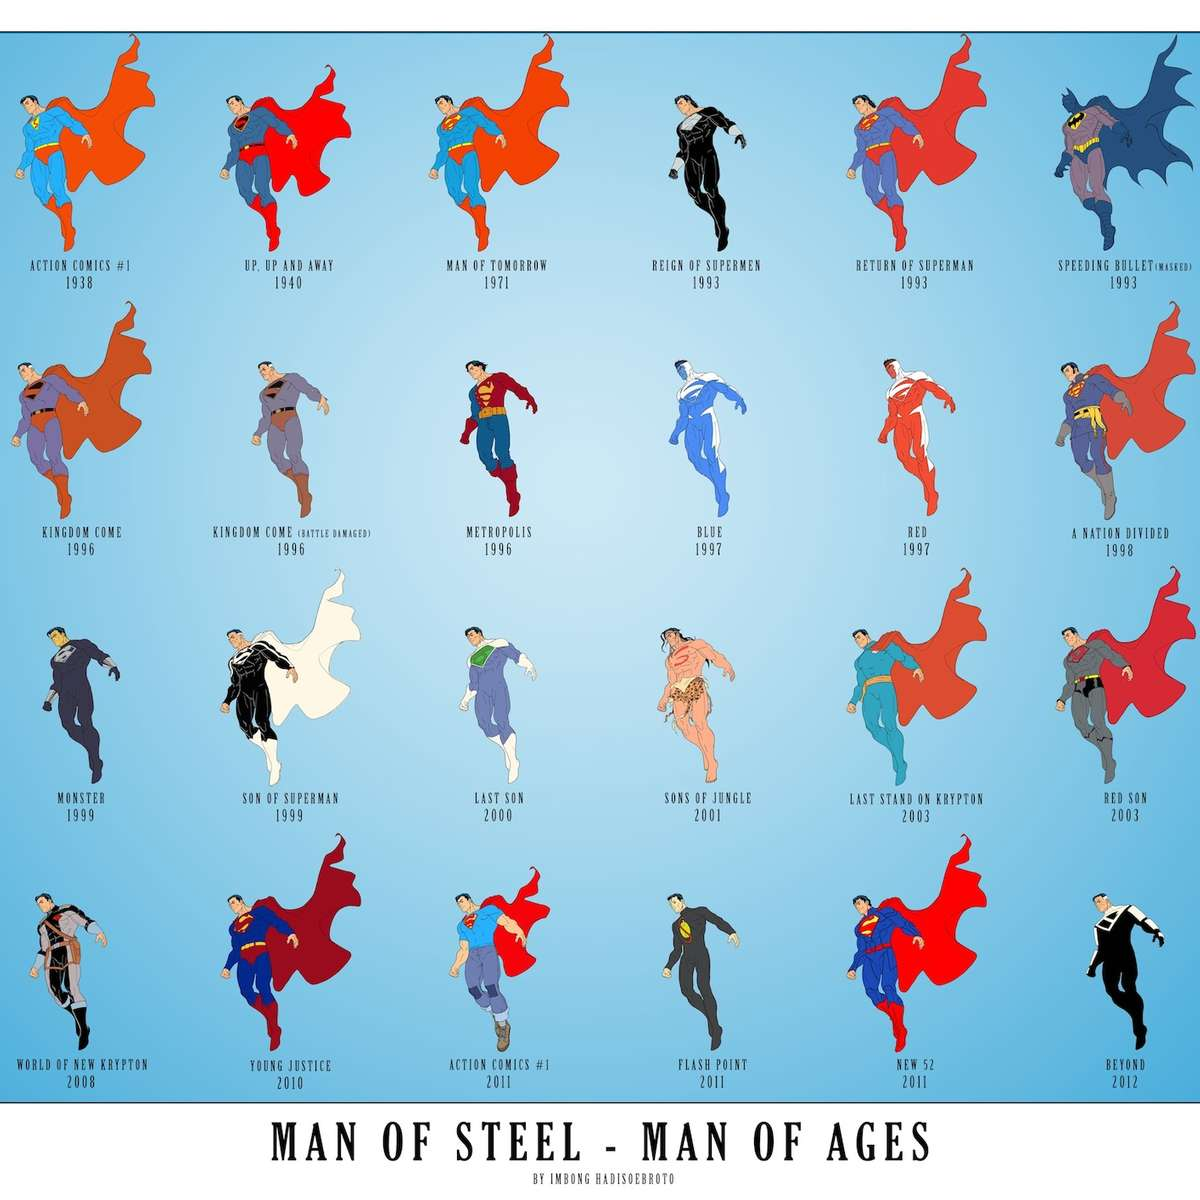 man_of_steel___man_of_ages_by_bongzberry-d5s7d0p.jpg